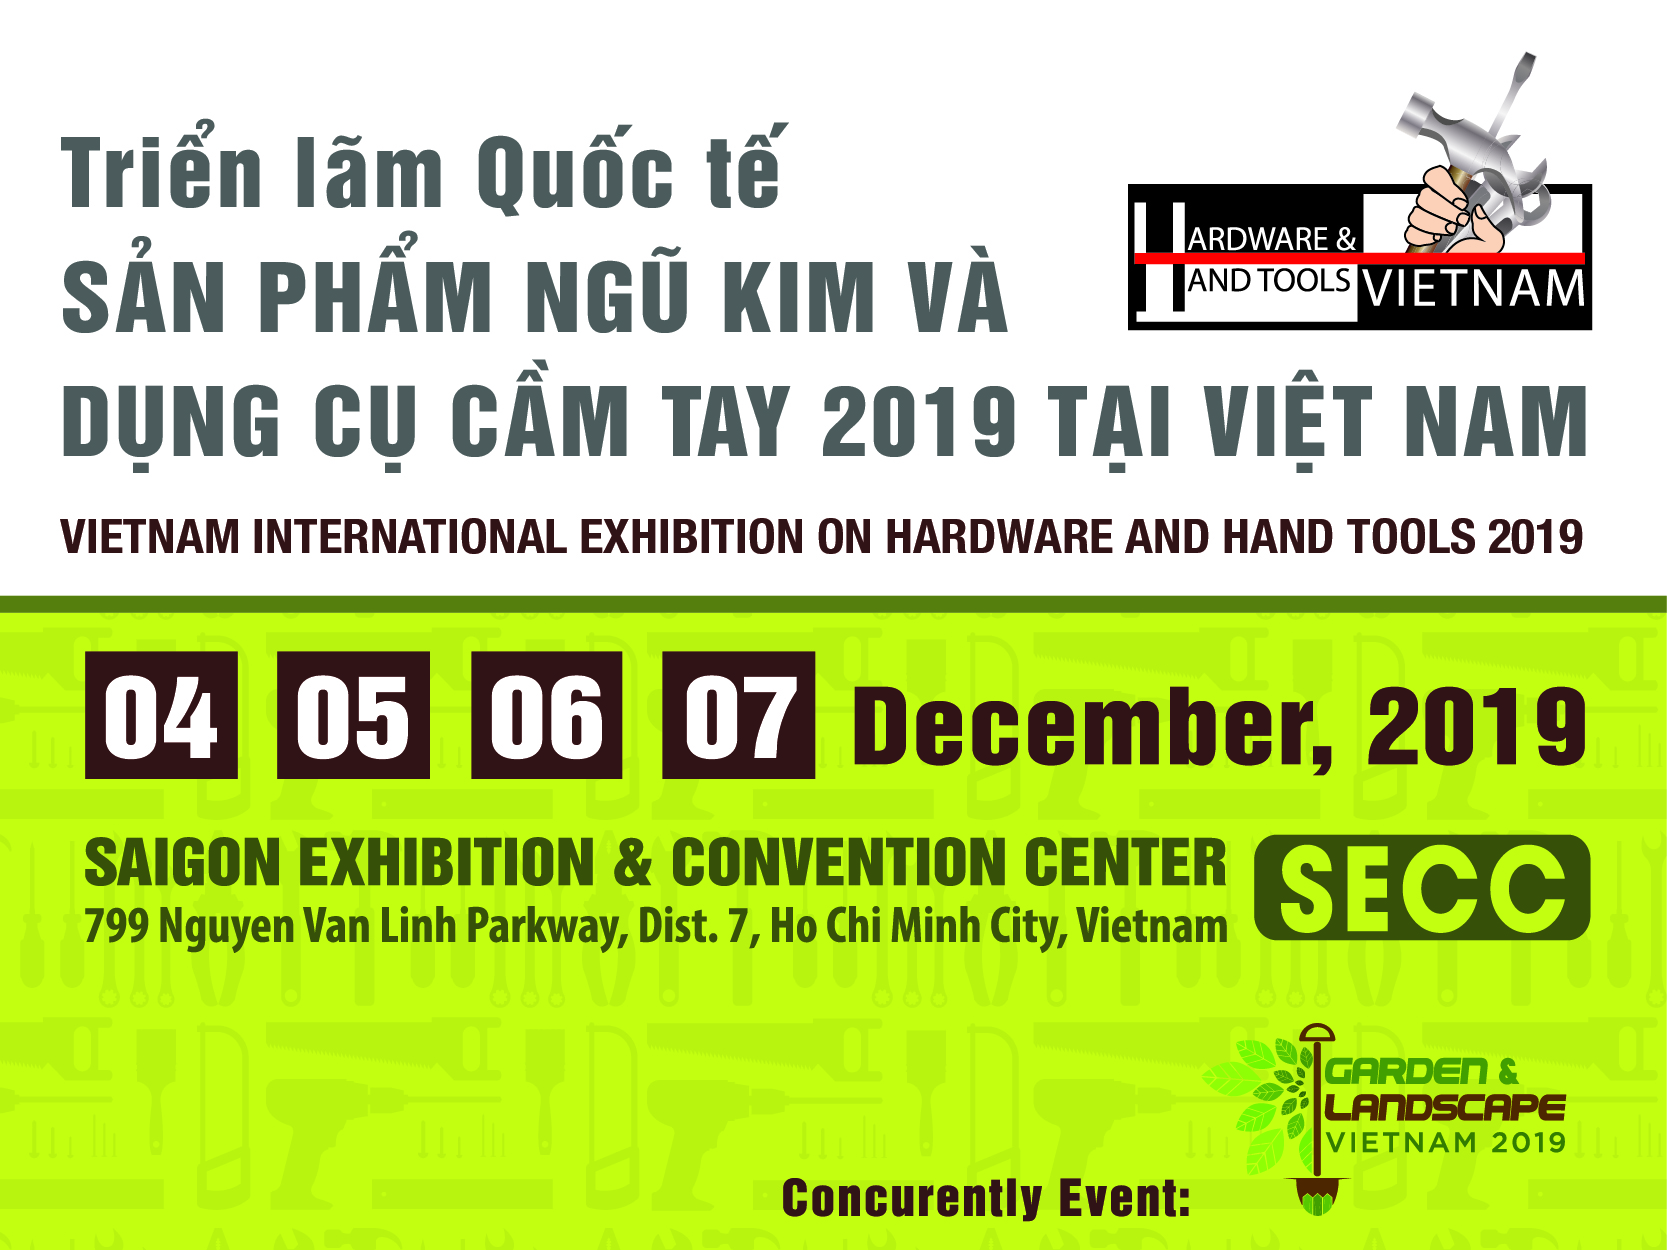 VIETNAM HARDWARE AND HAND TOOLS 2019